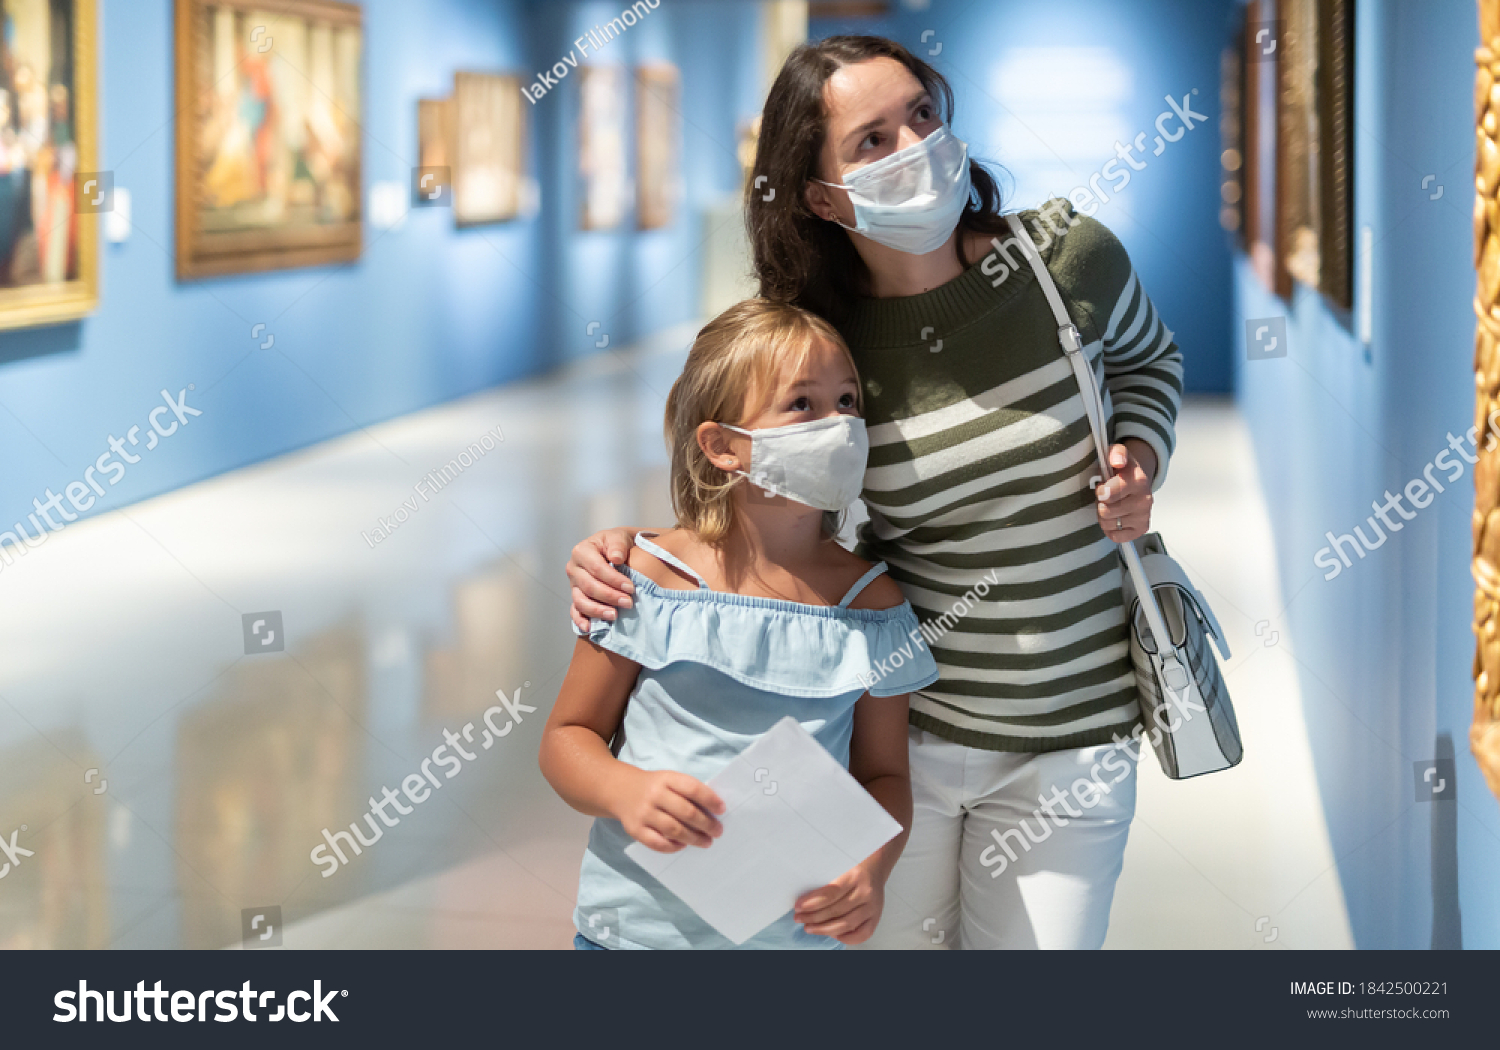 Portrait of woman with girl in medical masks standing in museum of art and looking at painting #1842500221